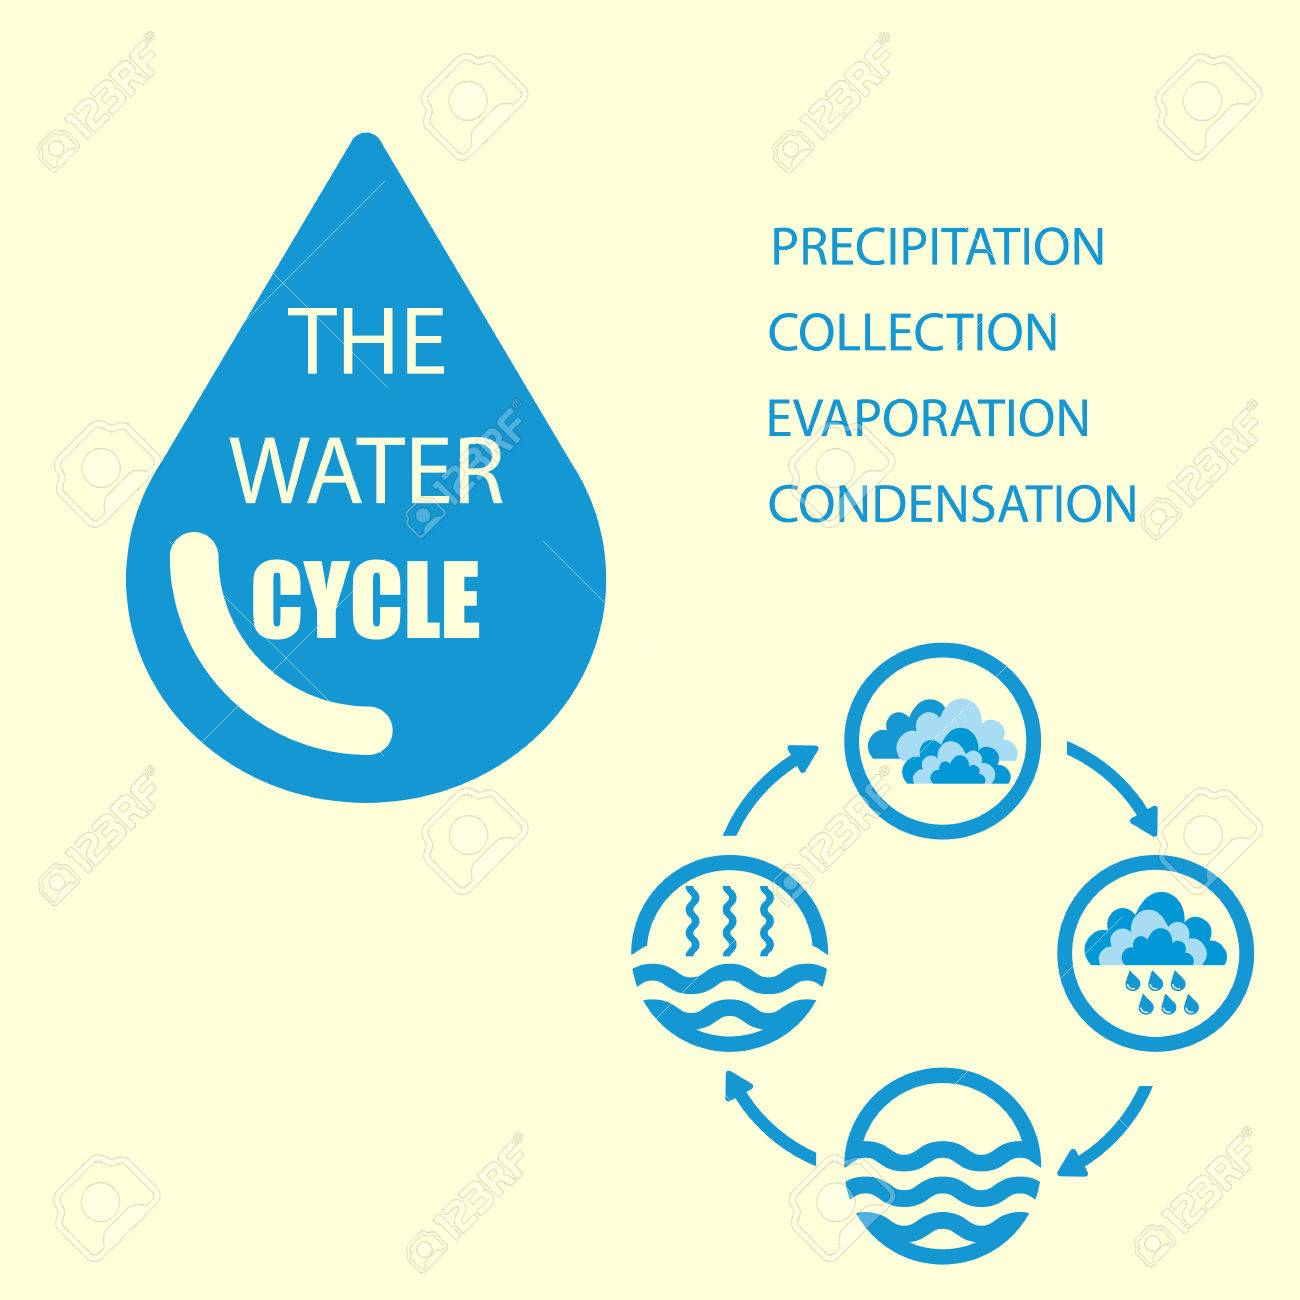 hight resolution of the water cycle raster diagram of precipitation collection evaporation and condensation icons set raster illustration